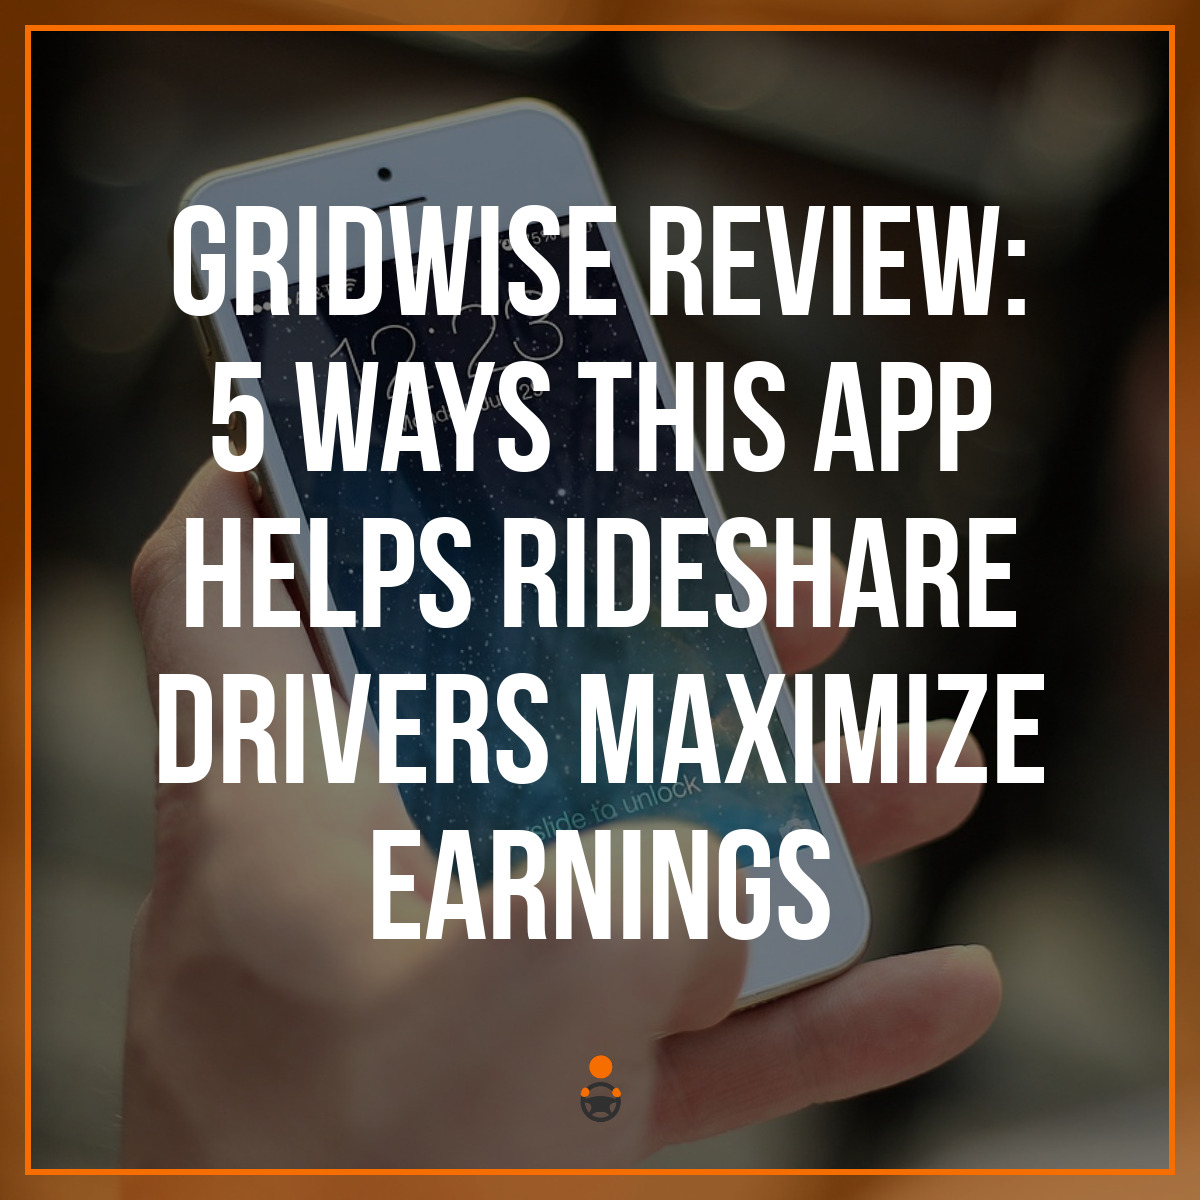 Gridwise Review: 5 Ways This App Helps Rideshare Drivers Maximize Earnings